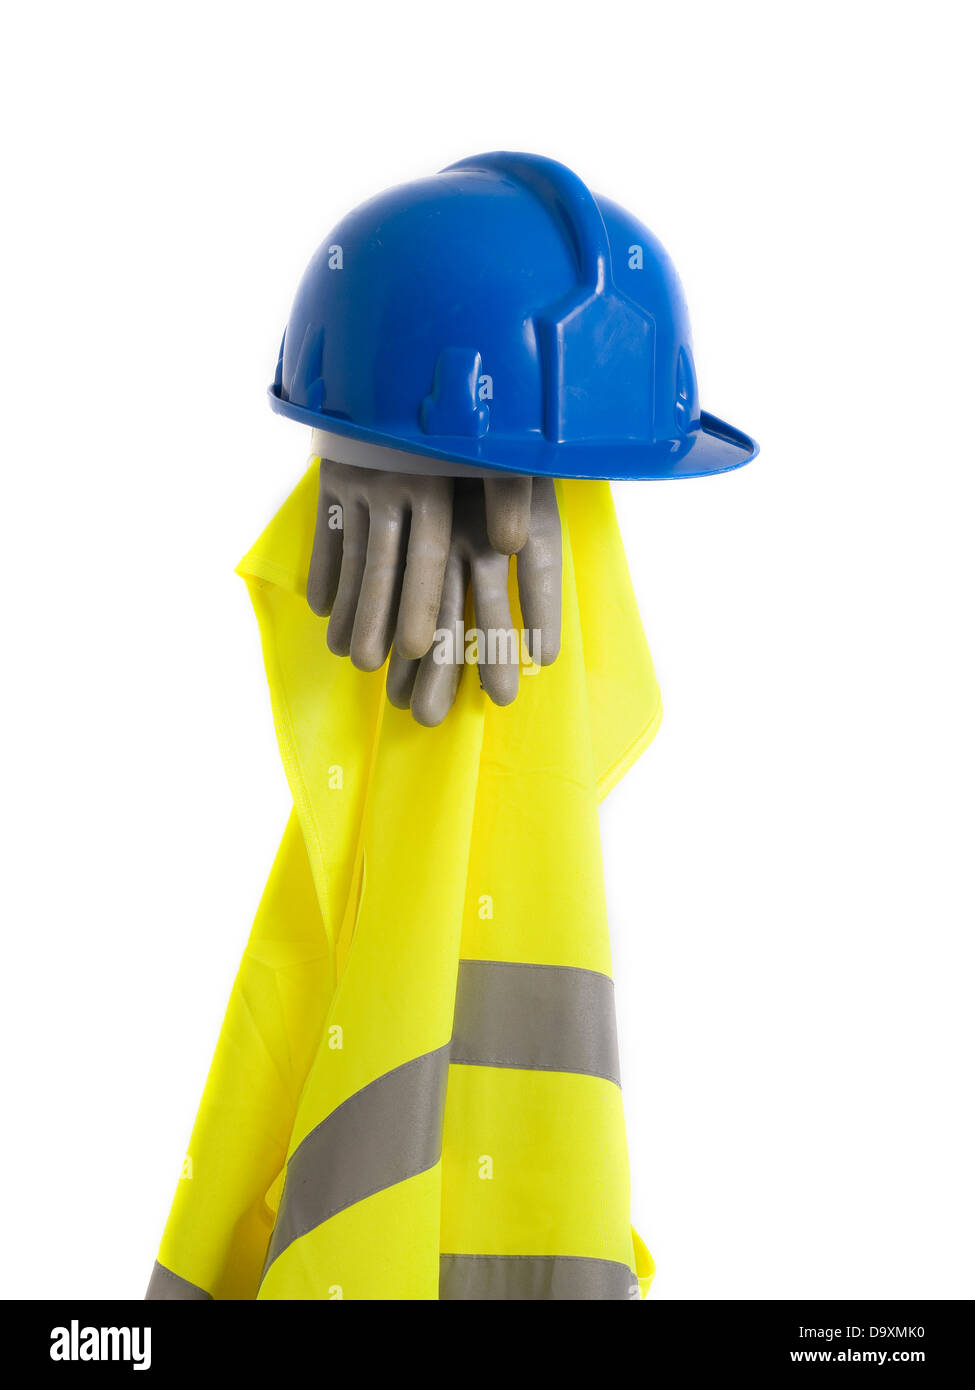 Reflective vest, helmet and safety gloves isolated on white background. A safety equipment. - Stock Image